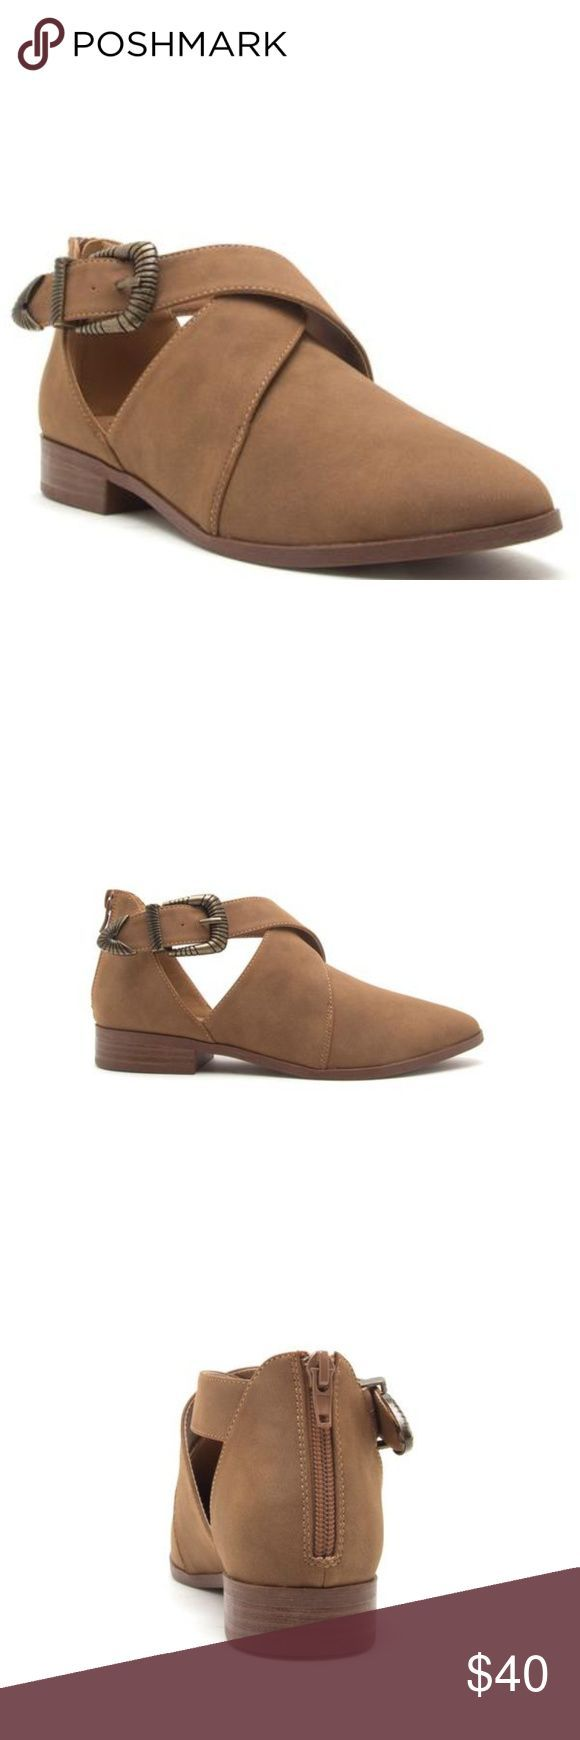 Buckled Wrap Flats These buckled wrap flats will make a great addition to my col  Buckled Wrap Flats These buckled wrap flats will make a great addition to my collection...